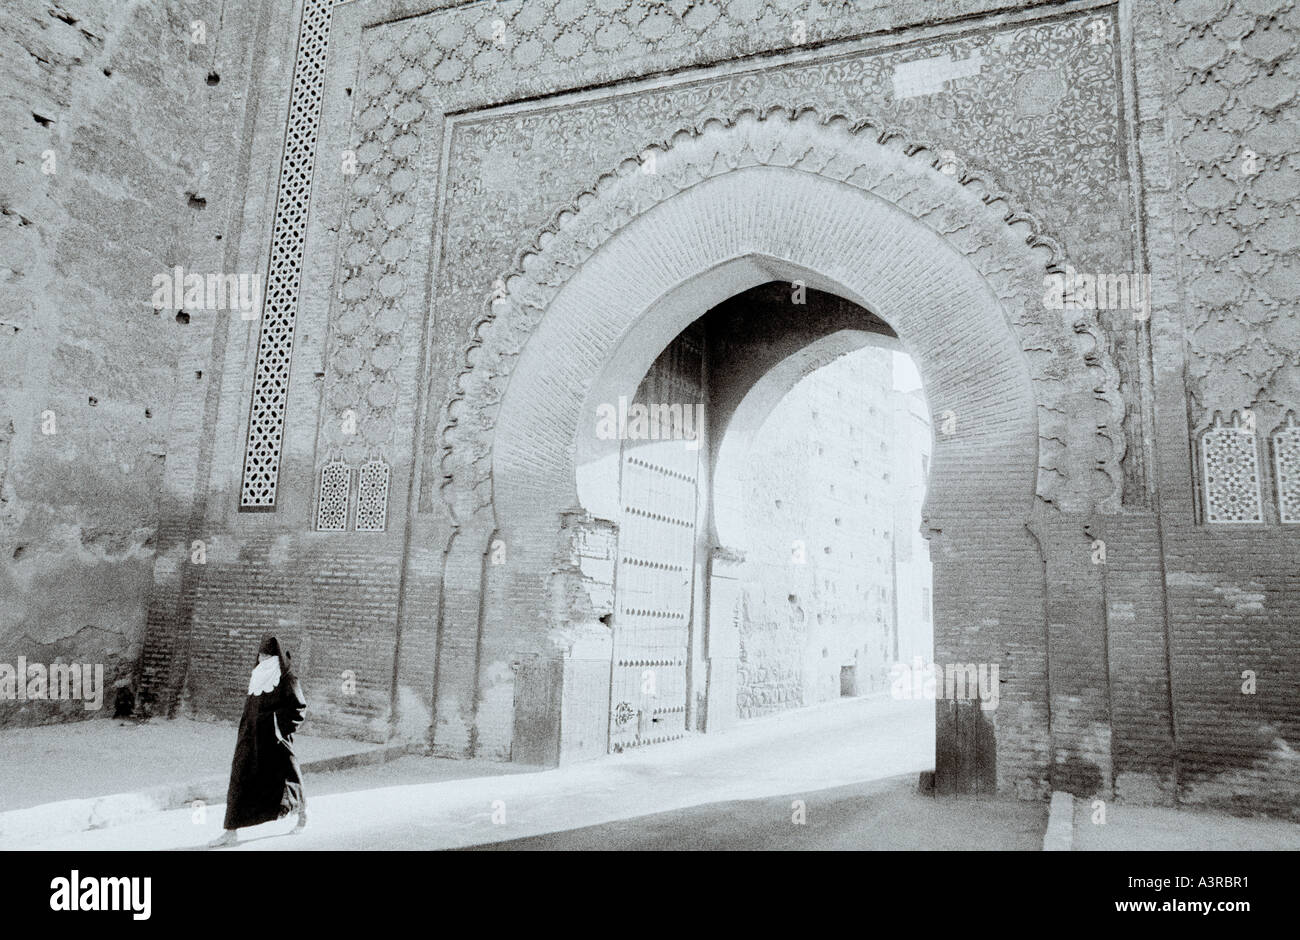 A woman in yashmak face veil walks through the Bab Mansour Gate in the Meknes Casbah Medina in Morocco in the Maghreb in North Africa Sahara. Travel - Stock Image